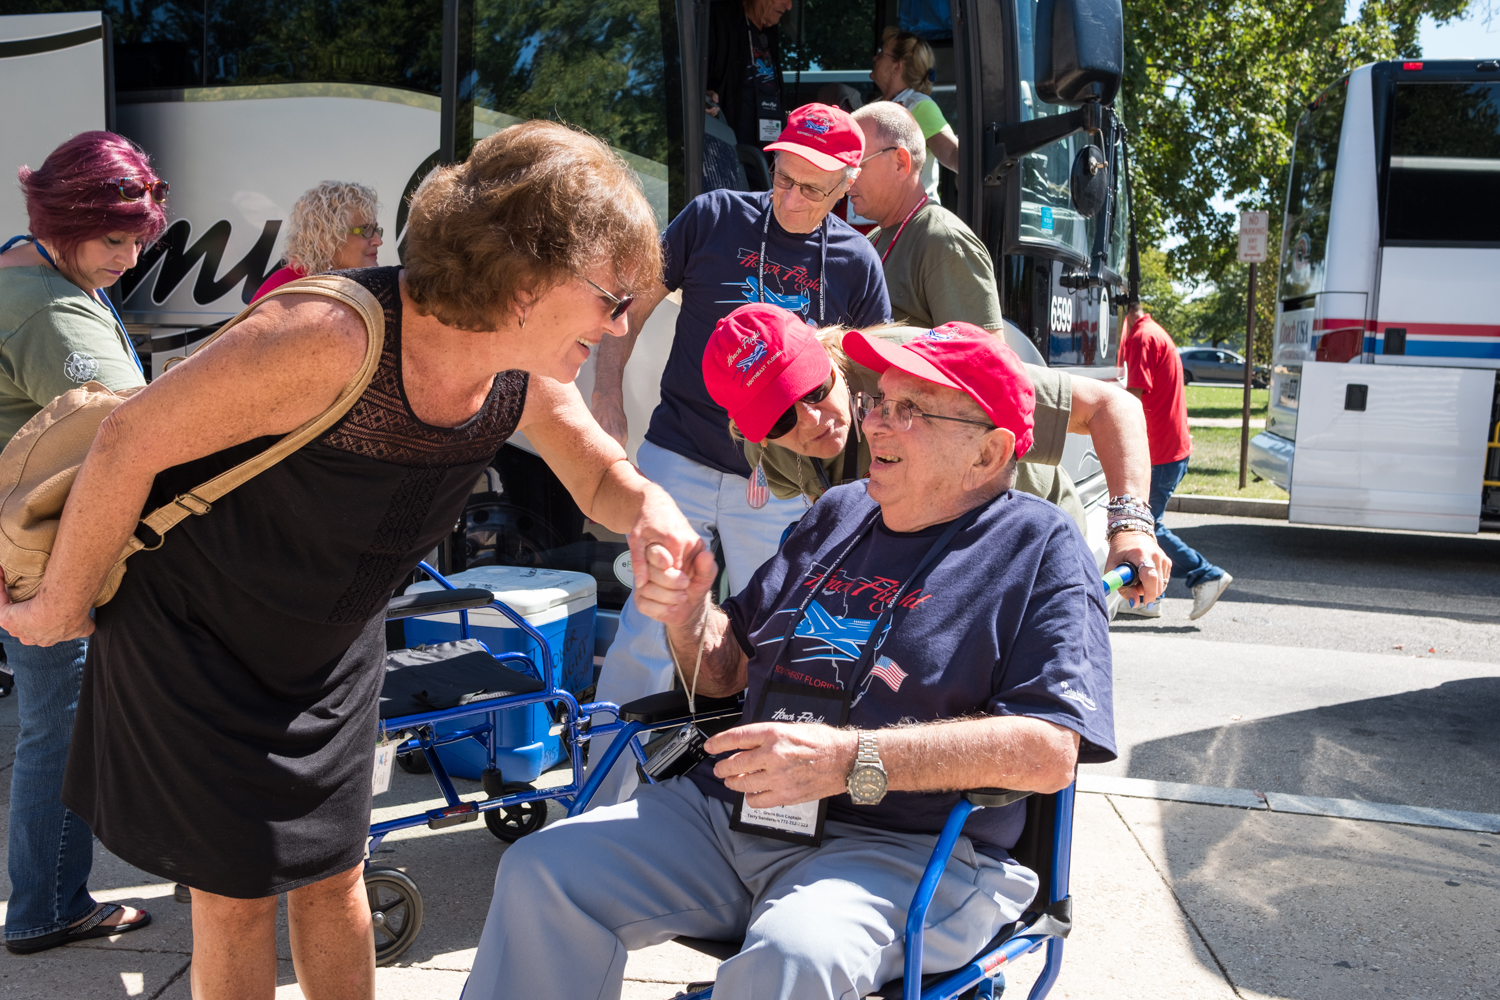 Veterans from Southeast Florida are greeted near the World War II Memorial during an Honor Flight event in Washington, D.C. Honor Flight is when veterans from around America visit the memorials on The National Mall.